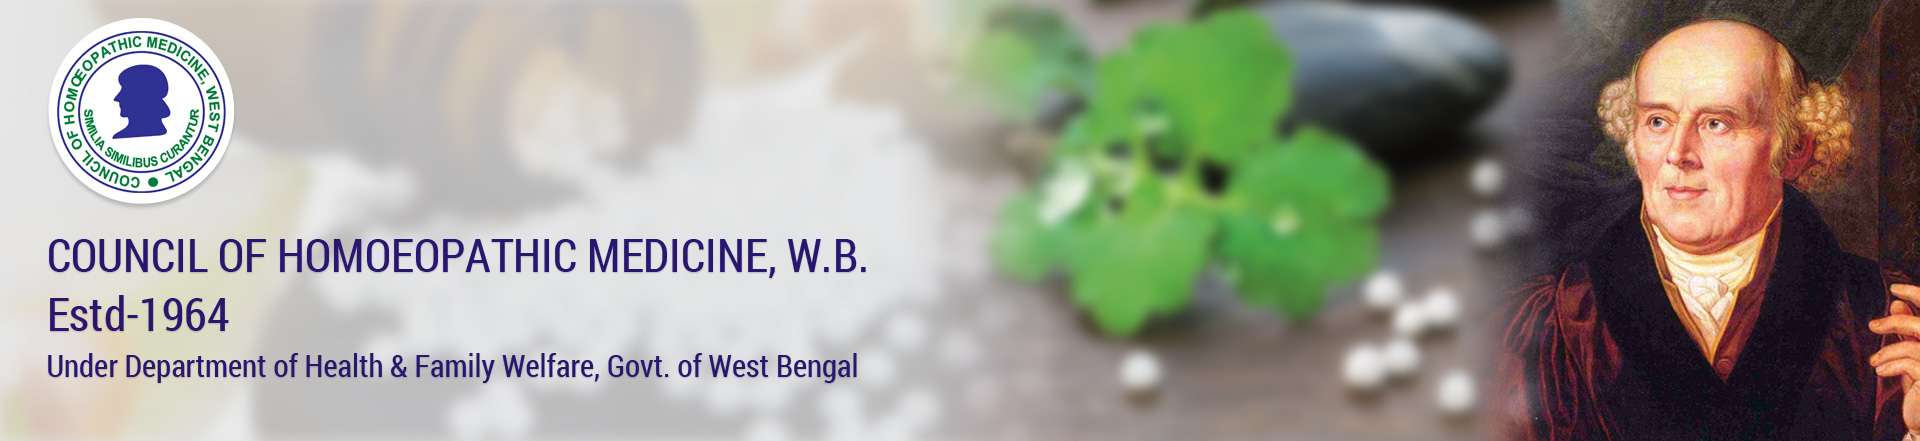 Council of homepathic medicine  westbengal